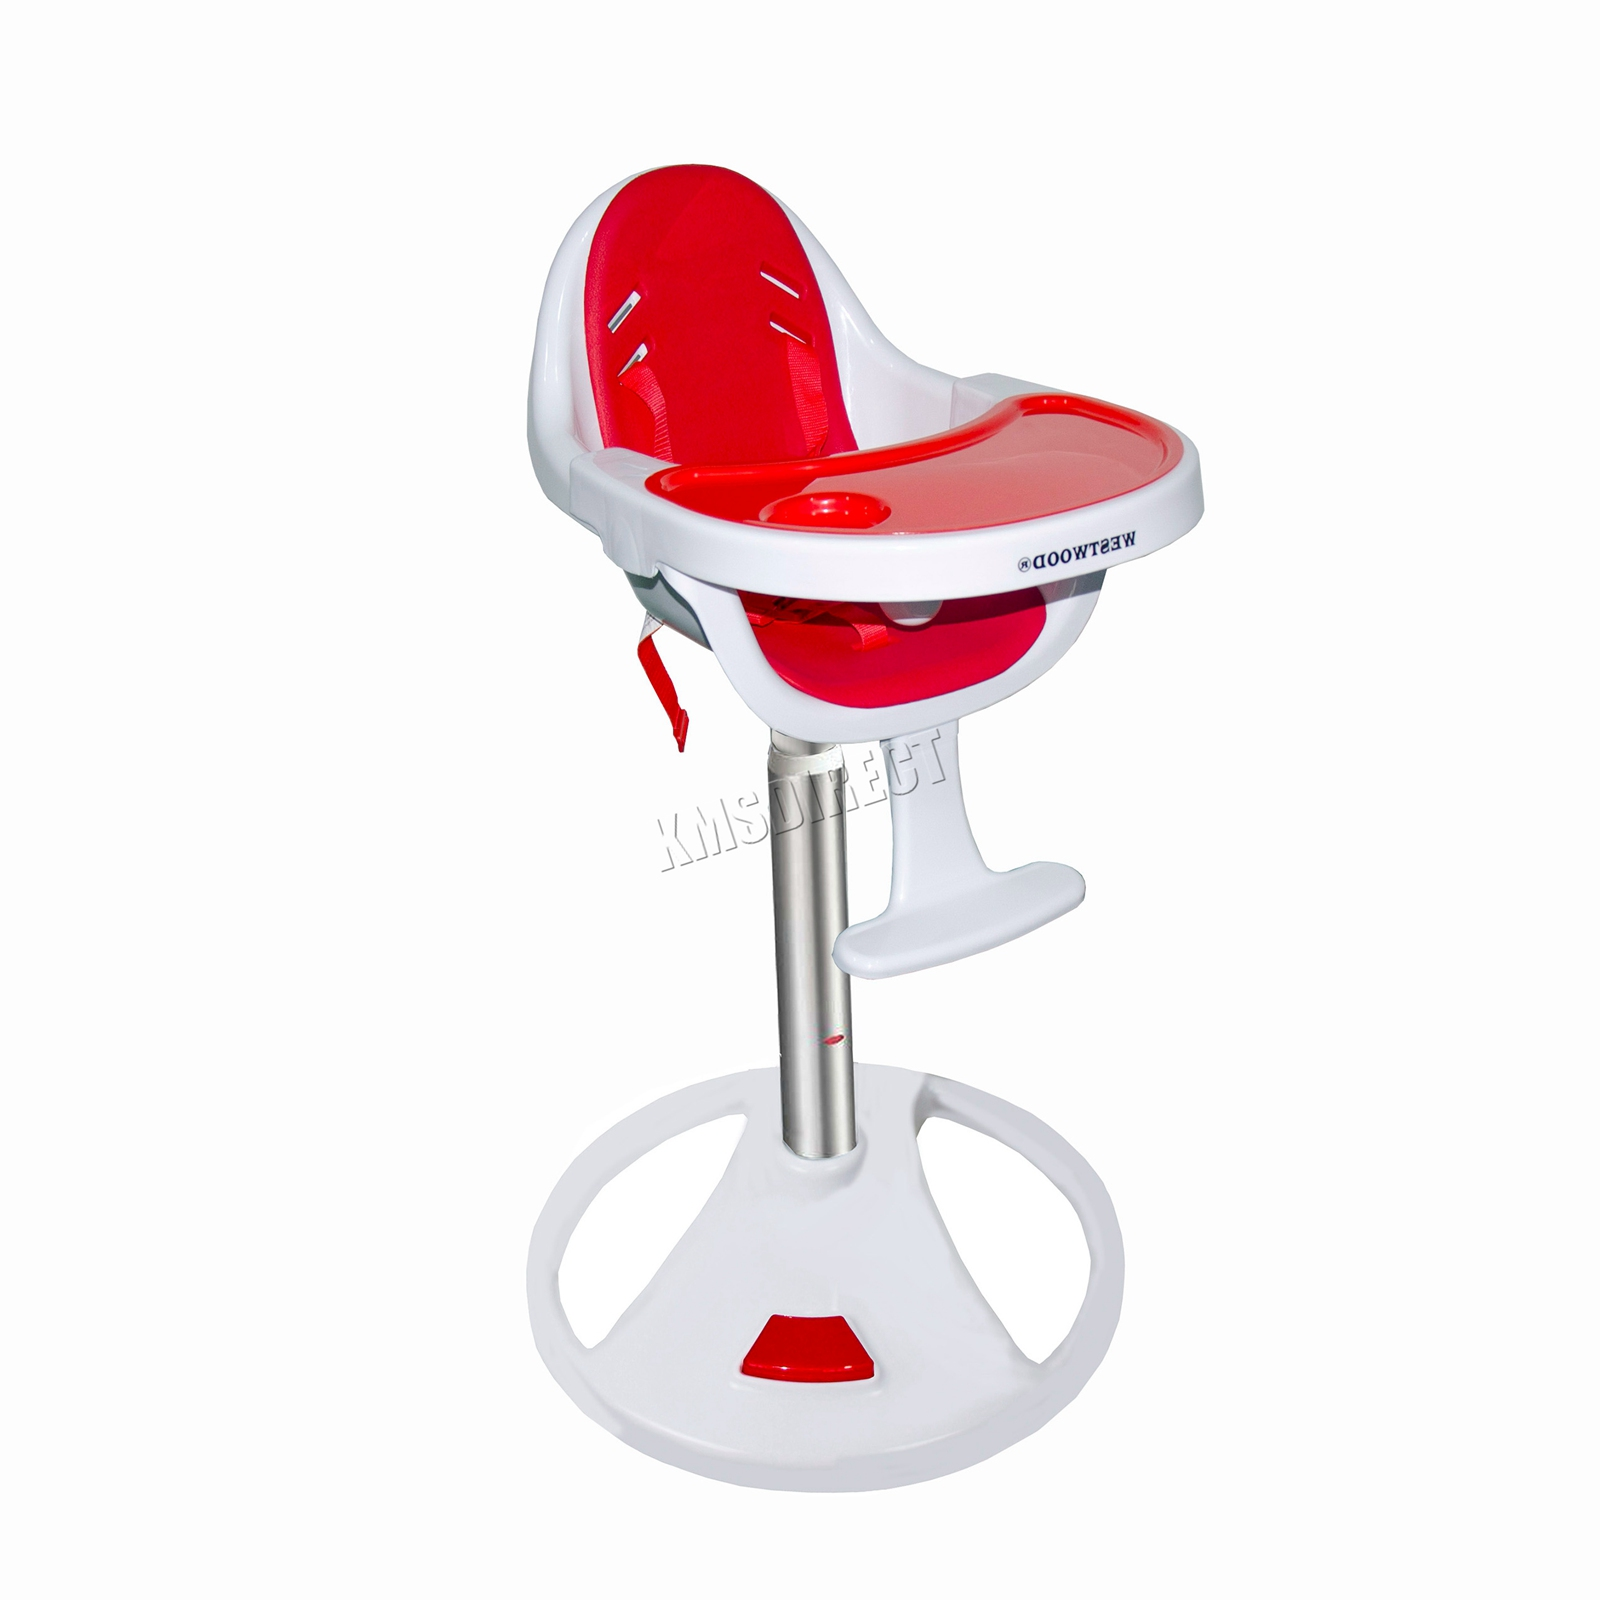 WestWood-360-Swivel-Baby-Highchair-Infant-feeding-Seat-Table-High-Chair-BHC03 thumbnail 33